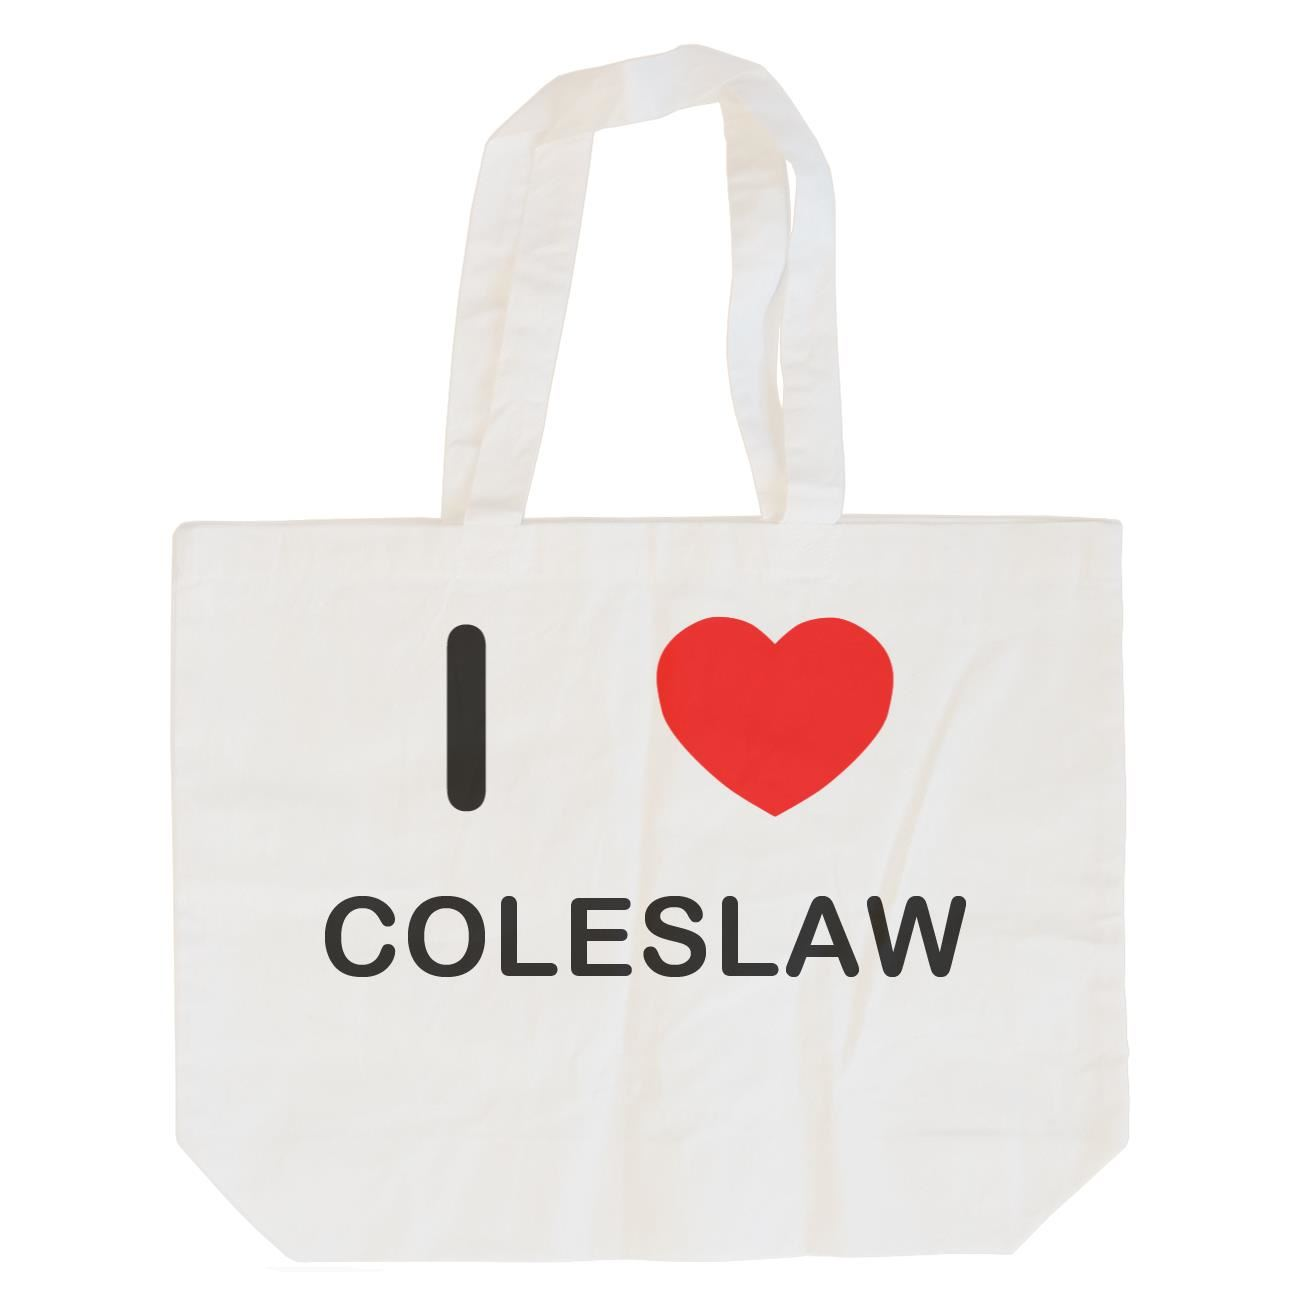 I Love Coleslaw - Cotton Bag | Size choice Tote, Shopper or Sling